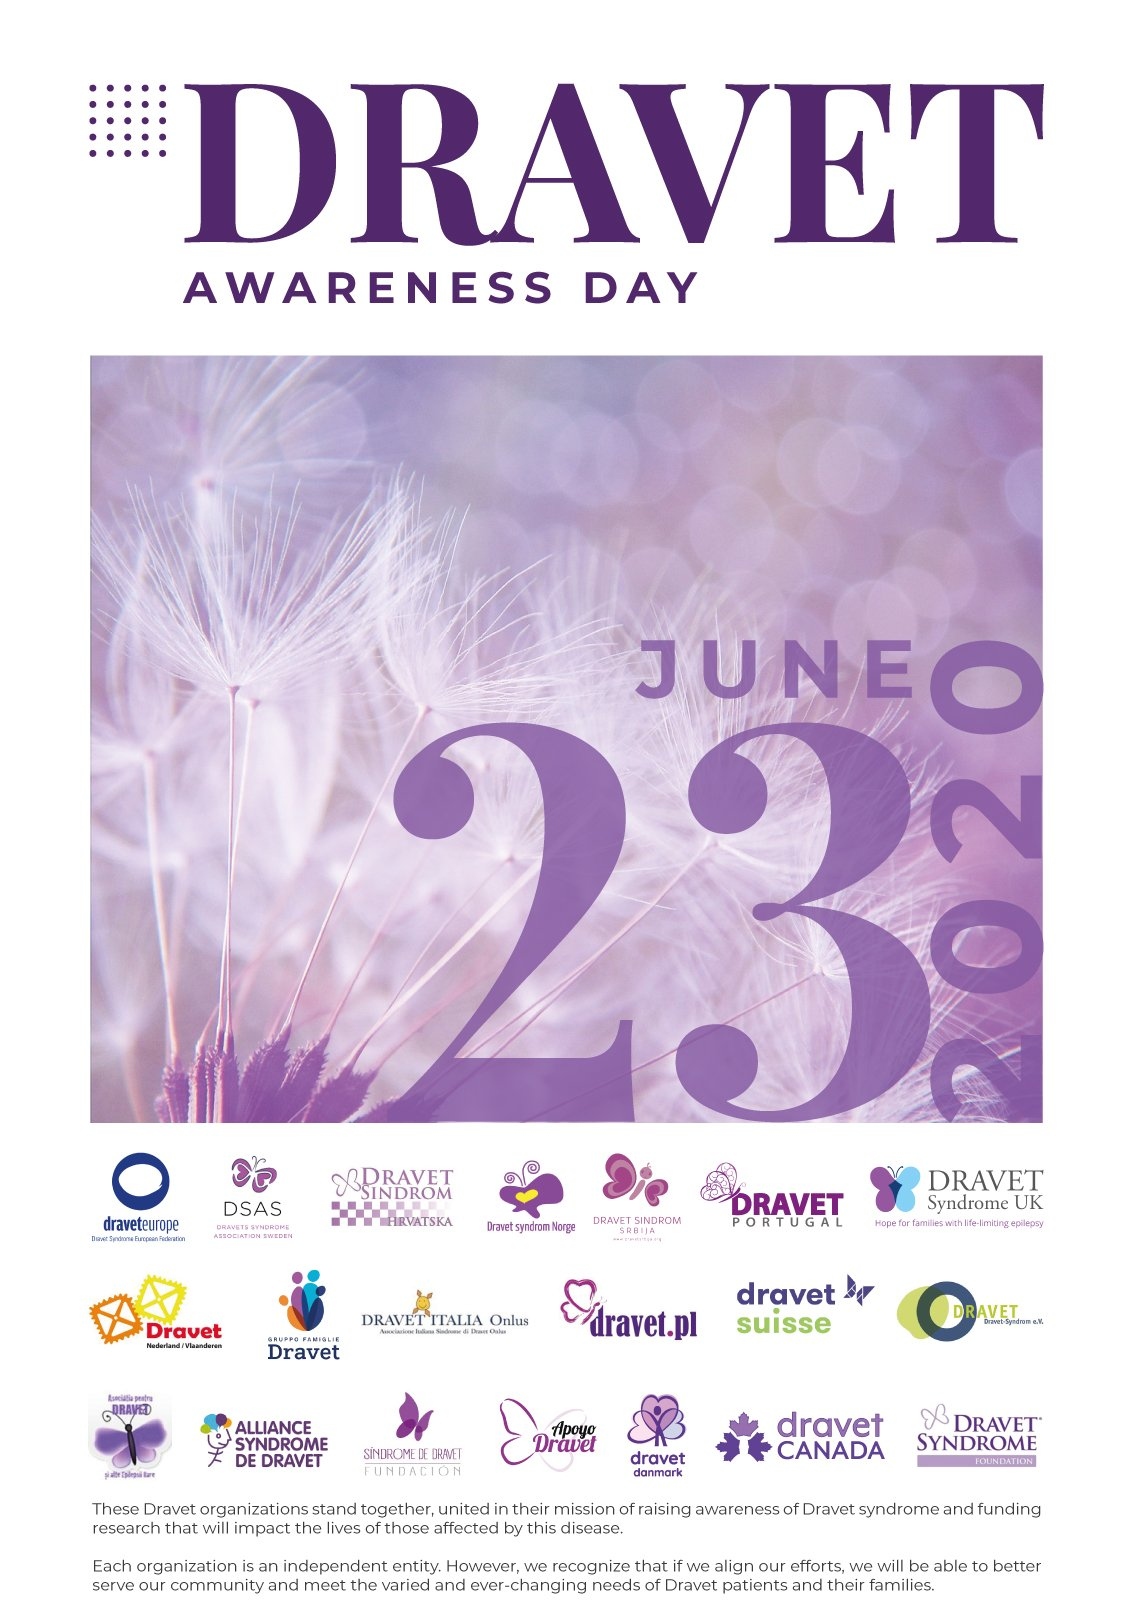 Dravet Awareness Day